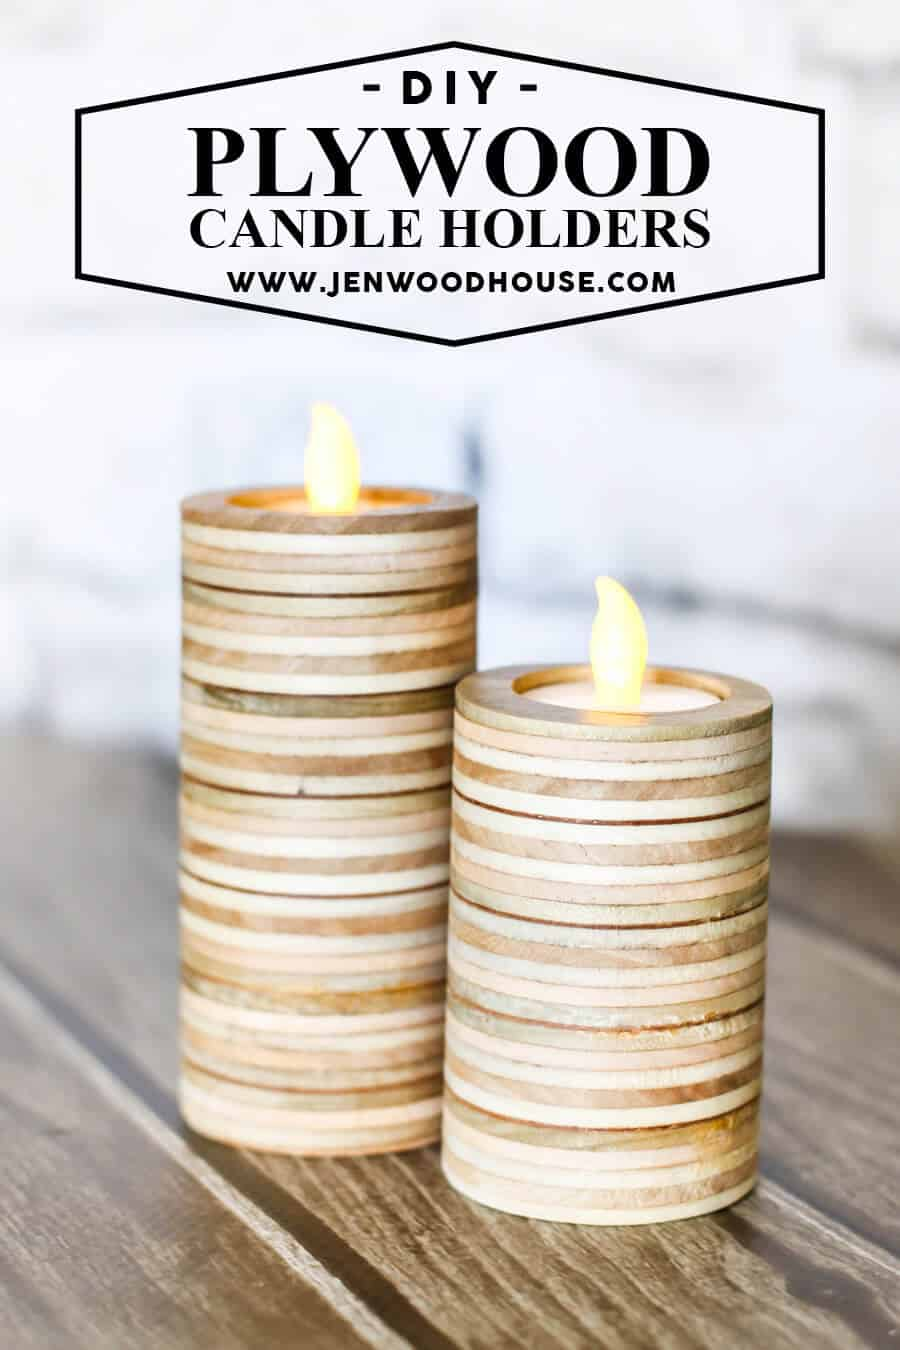 20 Crafty DIY Candle Holder Ideas to Warm Up Your Home